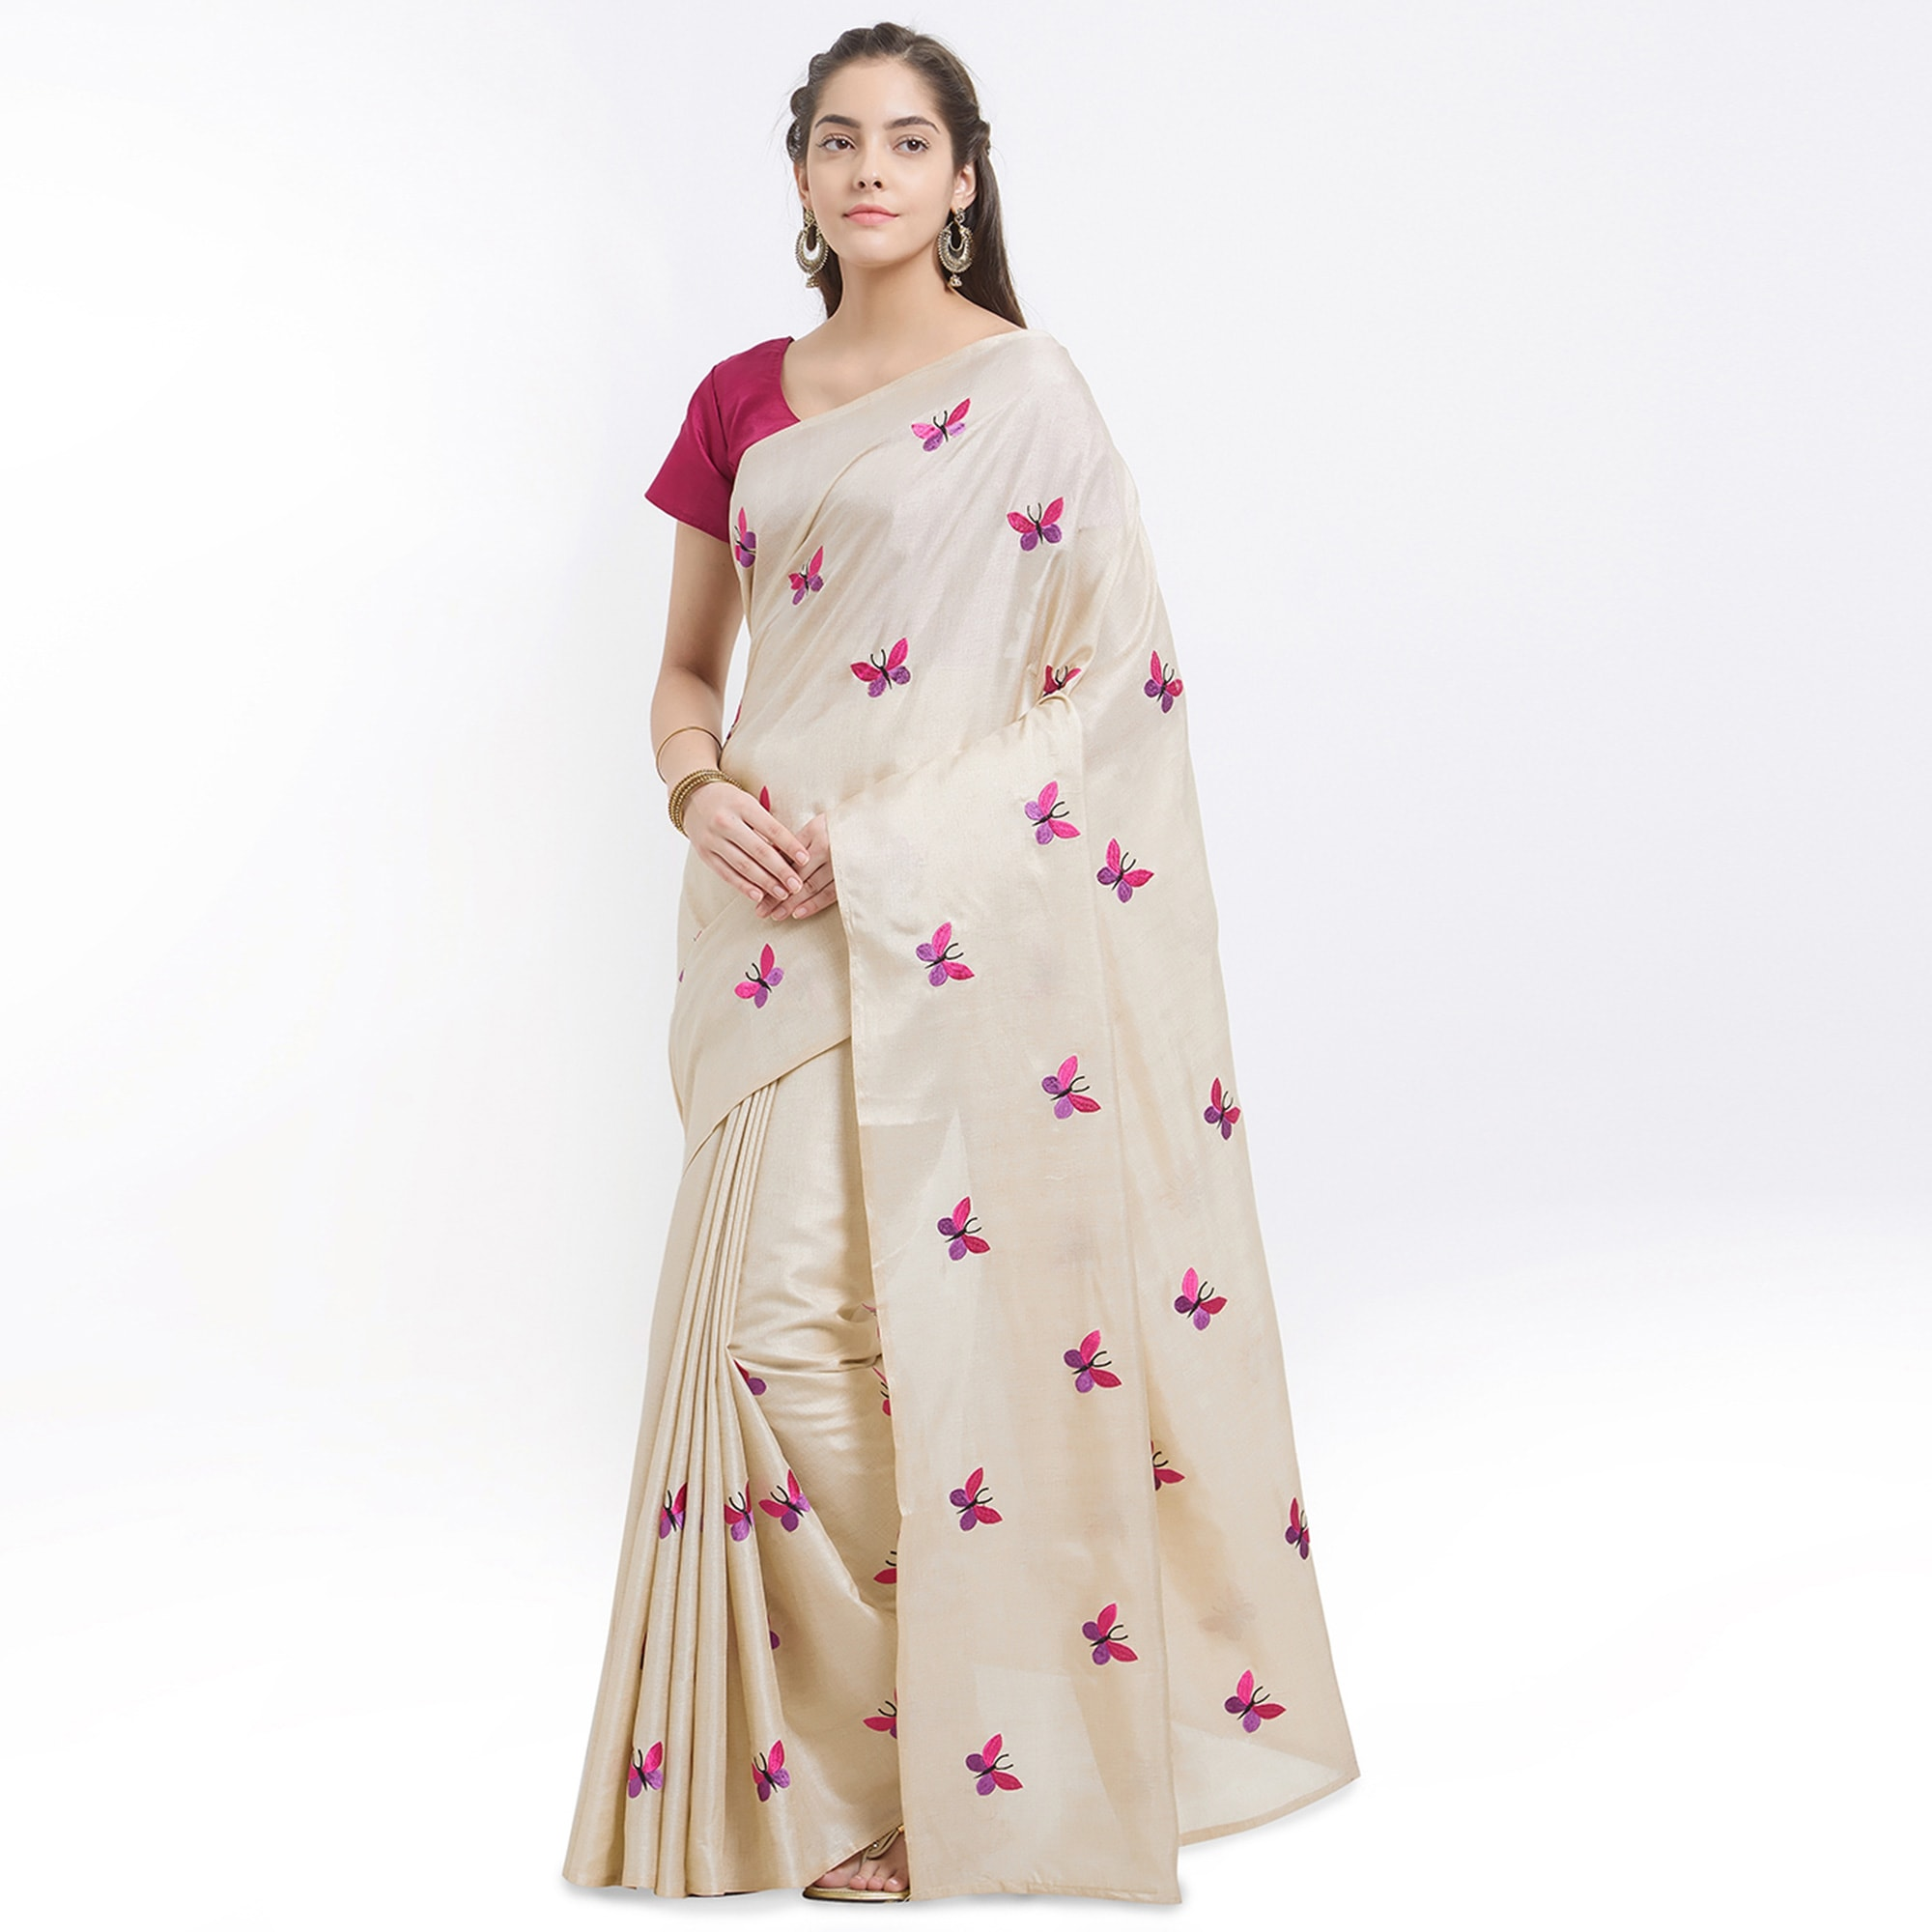 Classy White And Cream Colored Embroidered Saree Combo - Pack of 2